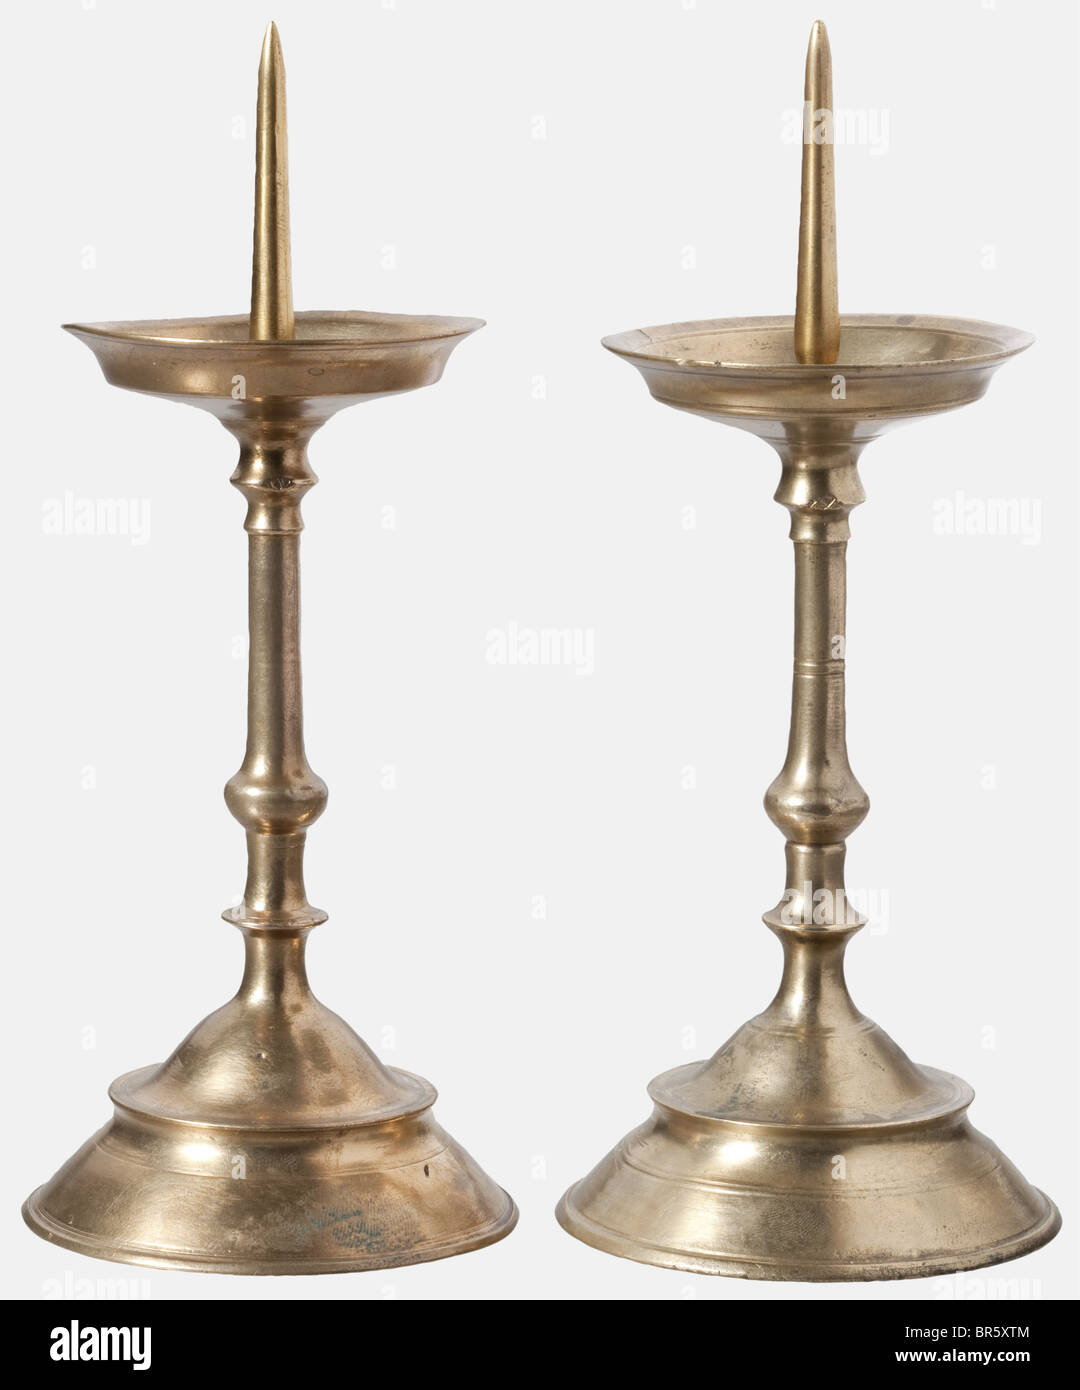 A pair of candle holders, Nuremberg, circa 1600 Brass holders cast in one piece with bell-shaped feet, slender stems - Stock Image